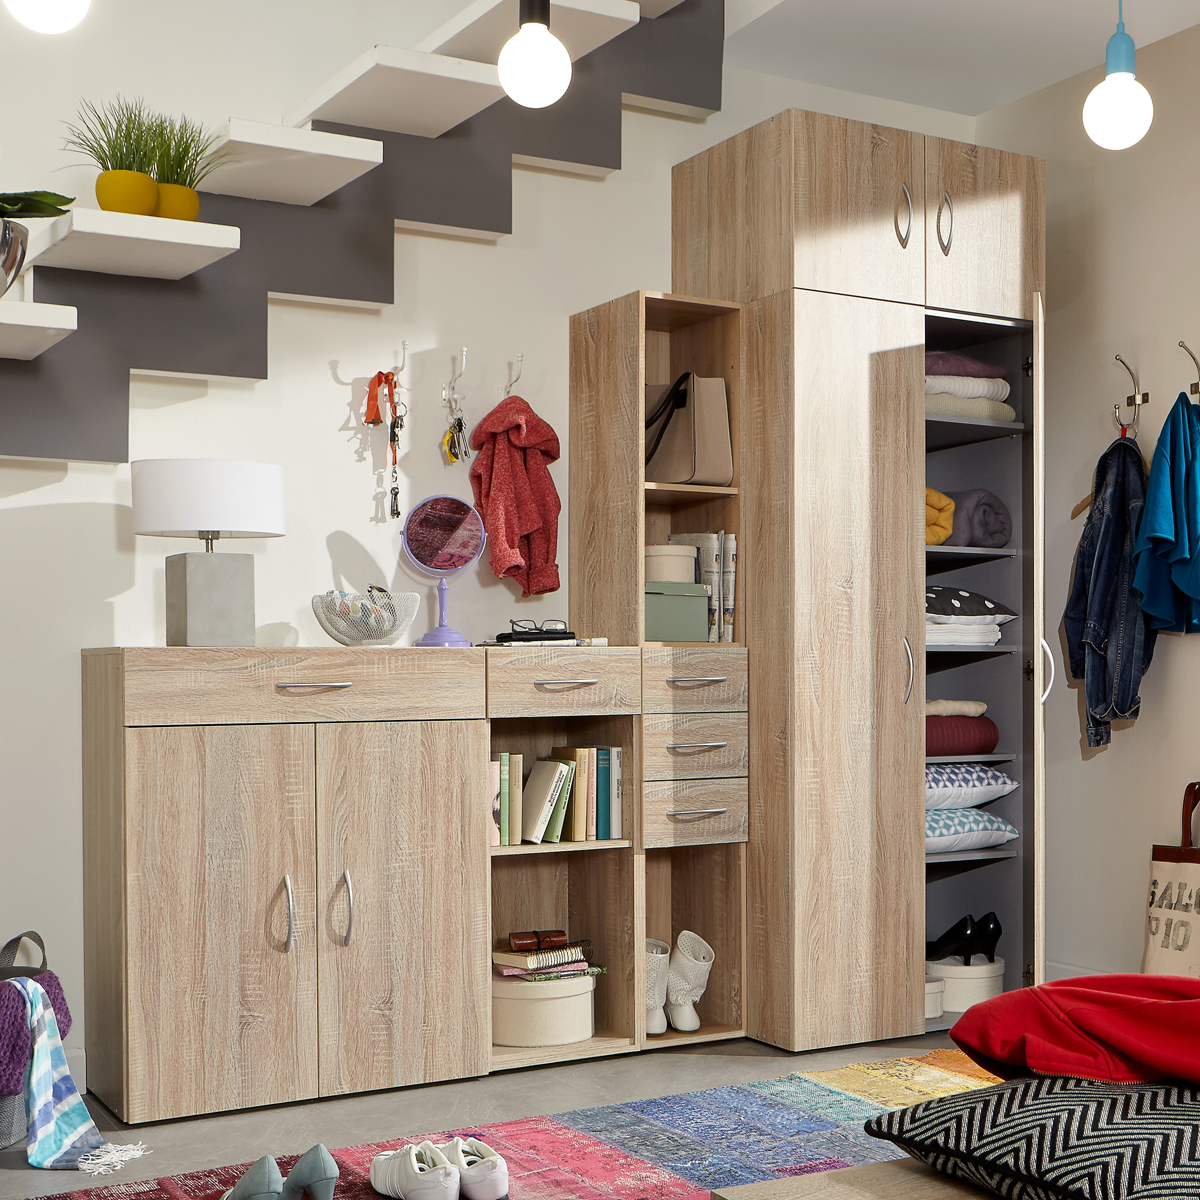 flurschrank multi room garderobe regalsystem schranksystem. Black Bedroom Furniture Sets. Home Design Ideas